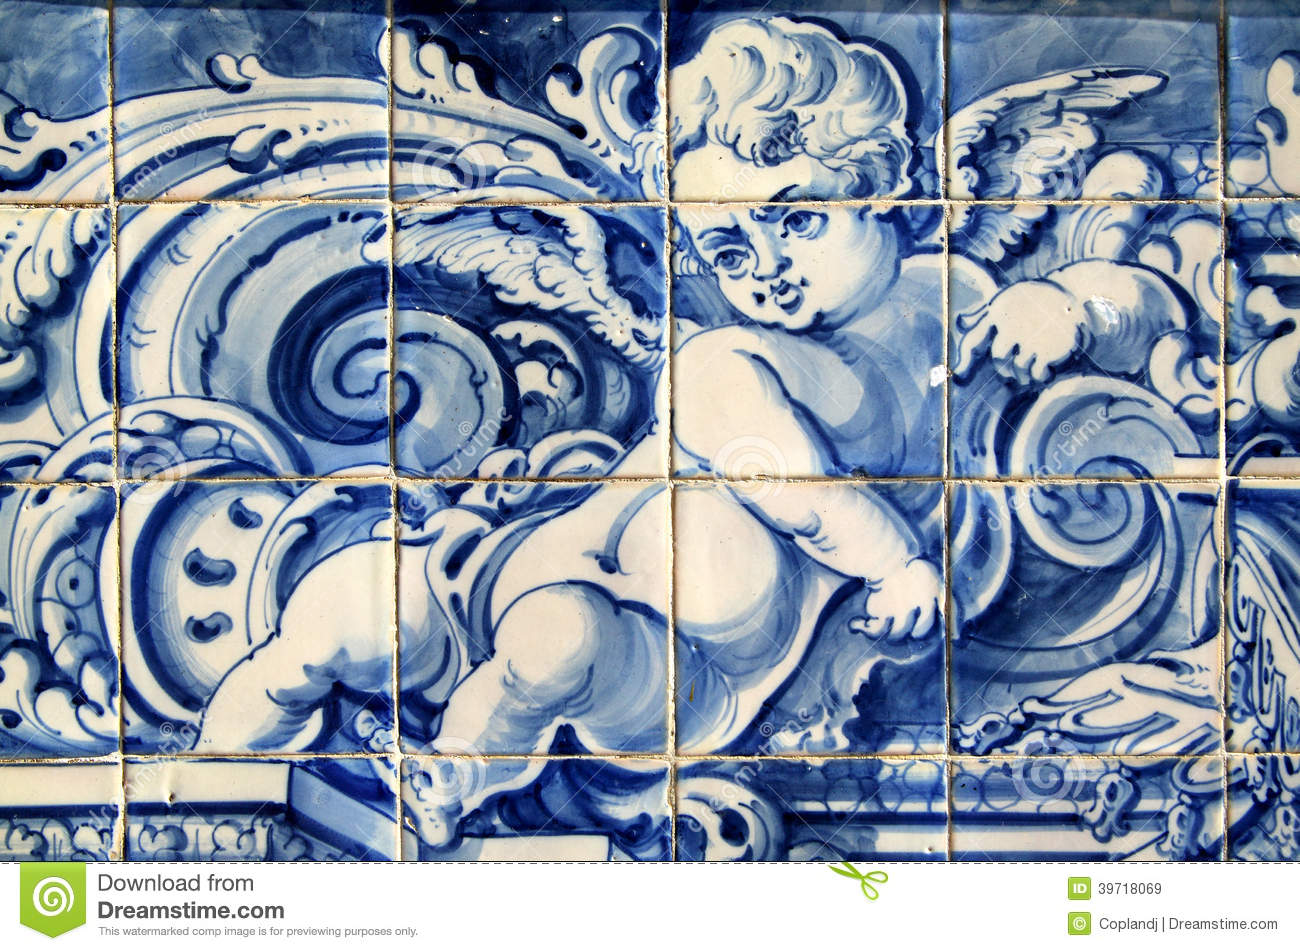 Portugal historical azulejo ceramic tiles stock image for La casa del azulejo san francisco